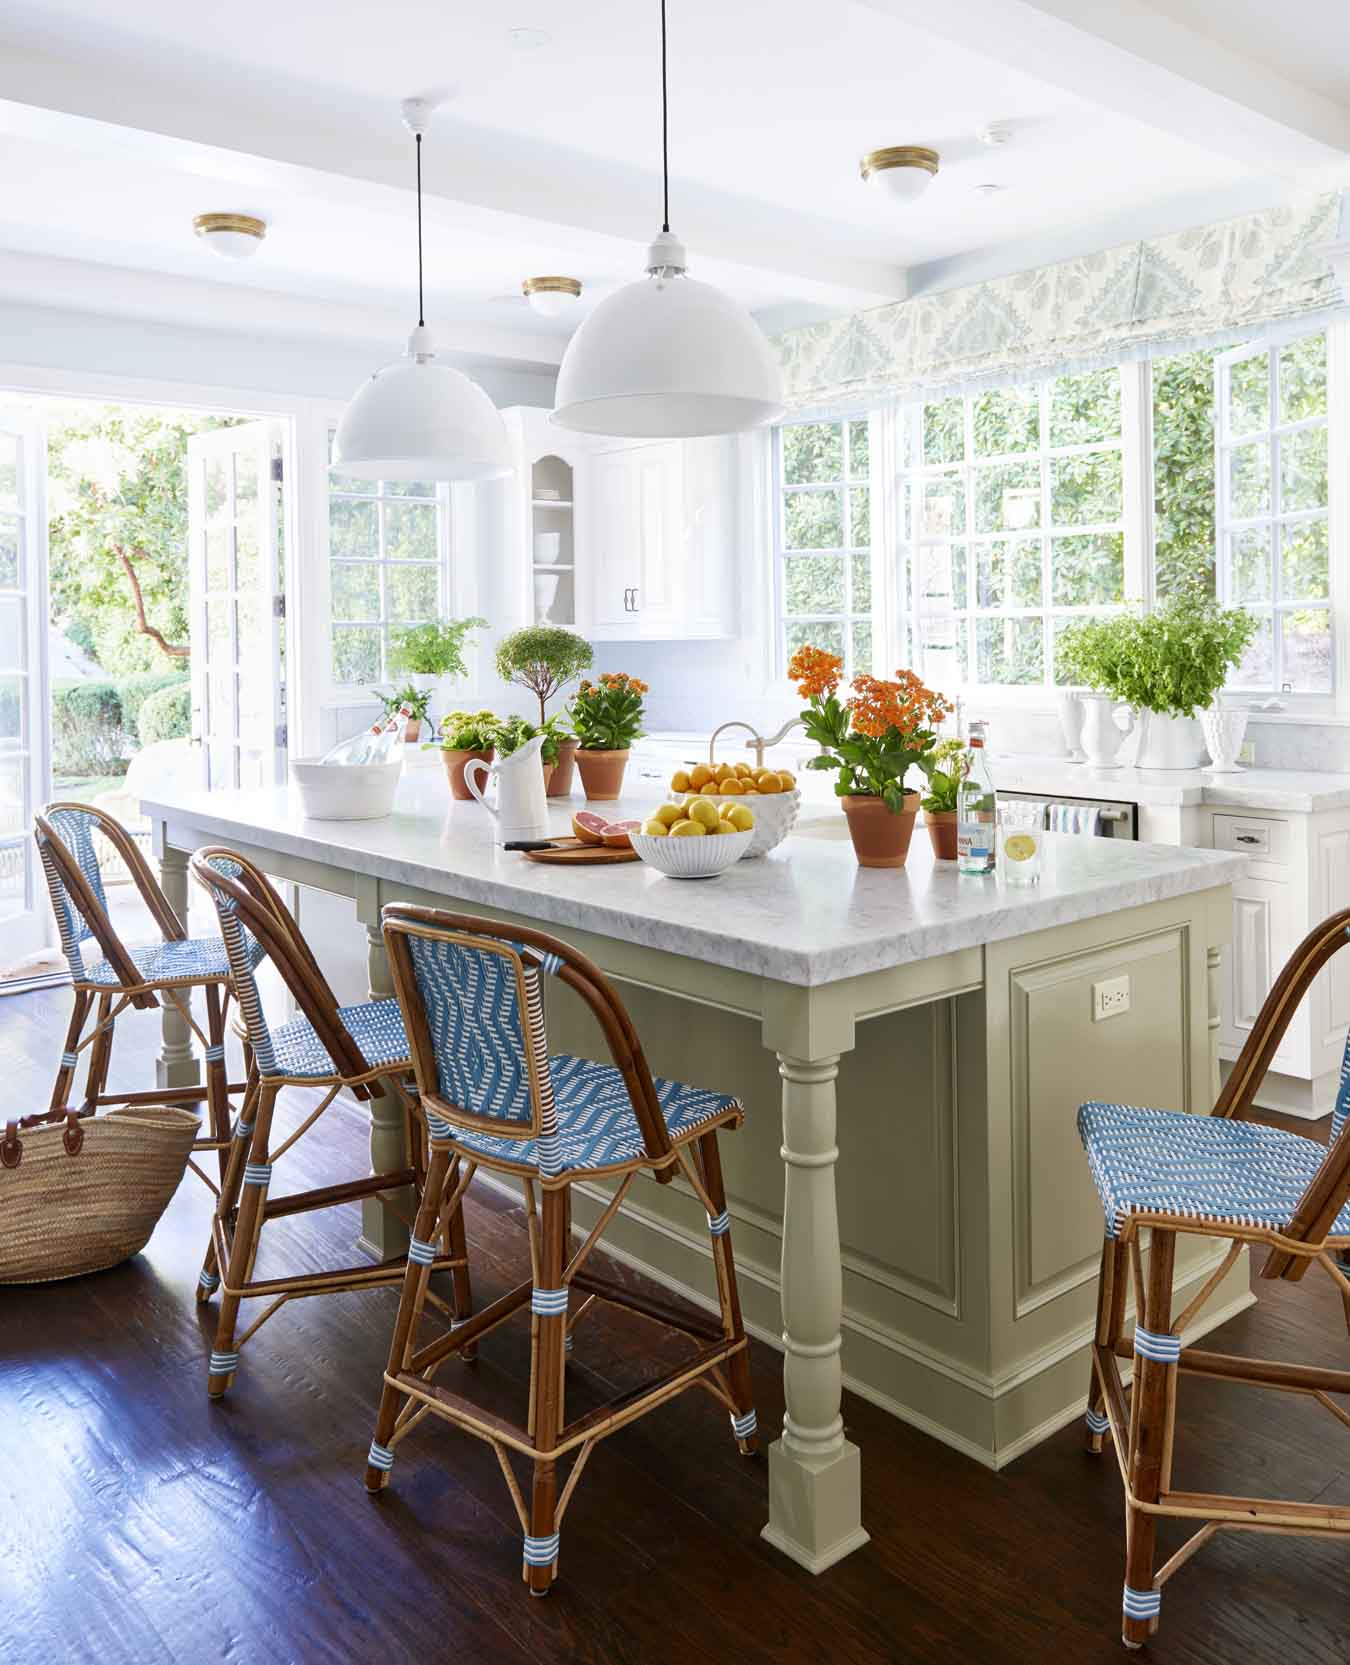 18 amazing kitchen island ideas plus costs roi